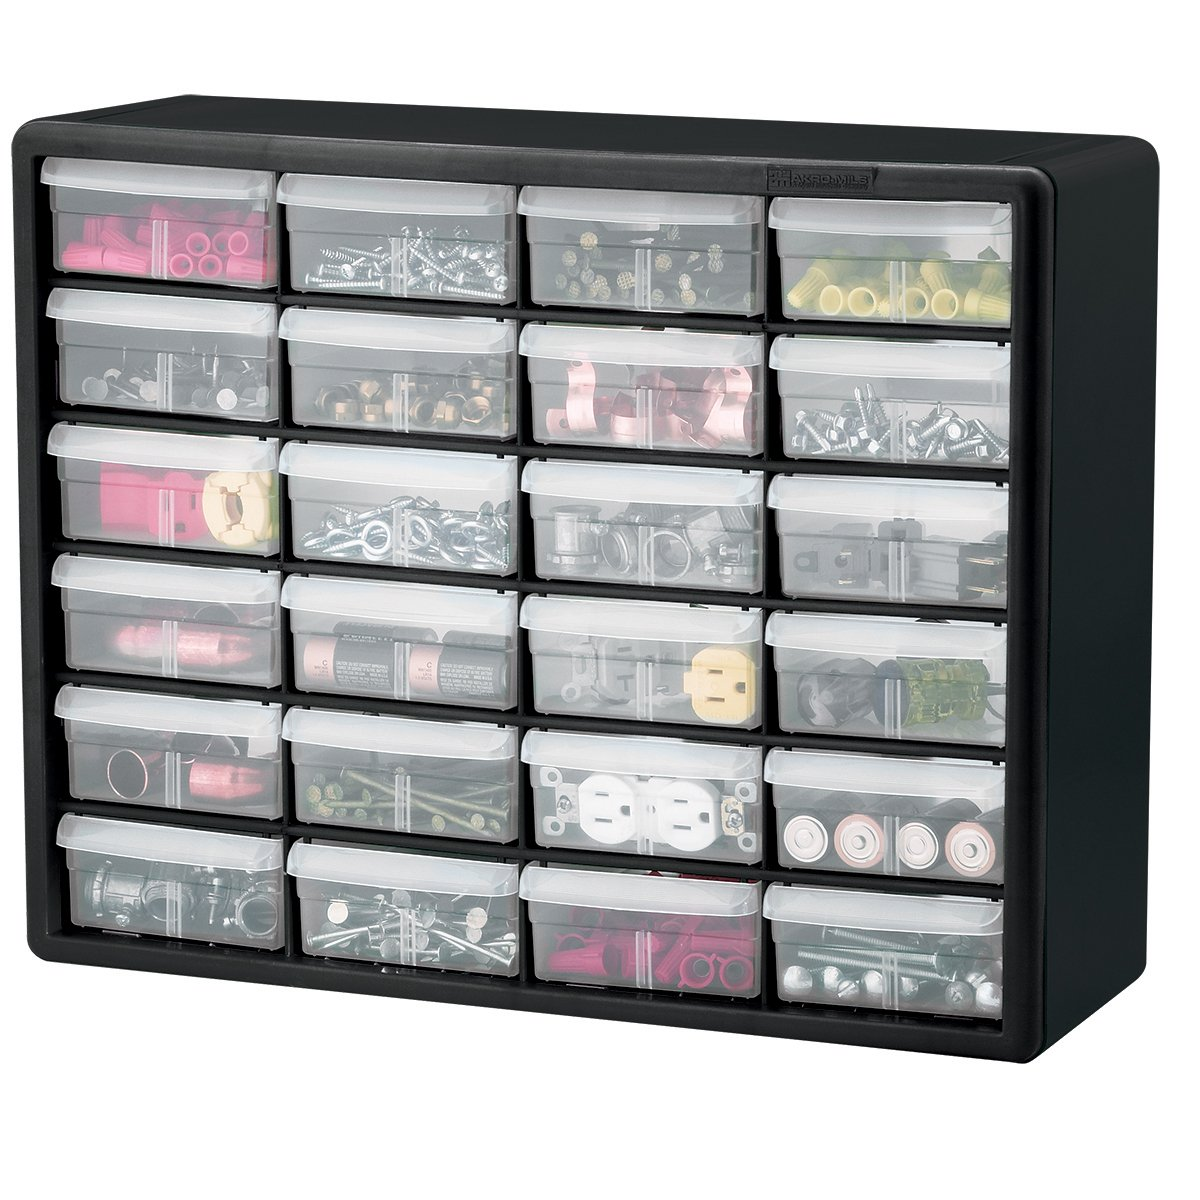 Amazon.com Akro-Mils 10724 24-Drawer Plastic Parts Storage Hardware and Craft Cabinet 20-Inch by 16-Inch by 6-1/2-Inch Black Home Improvement  sc 1 st  Amazon.com & Amazon.com: Akro-Mils 10724 24-Drawer Plastic Parts Storage Hardware ...